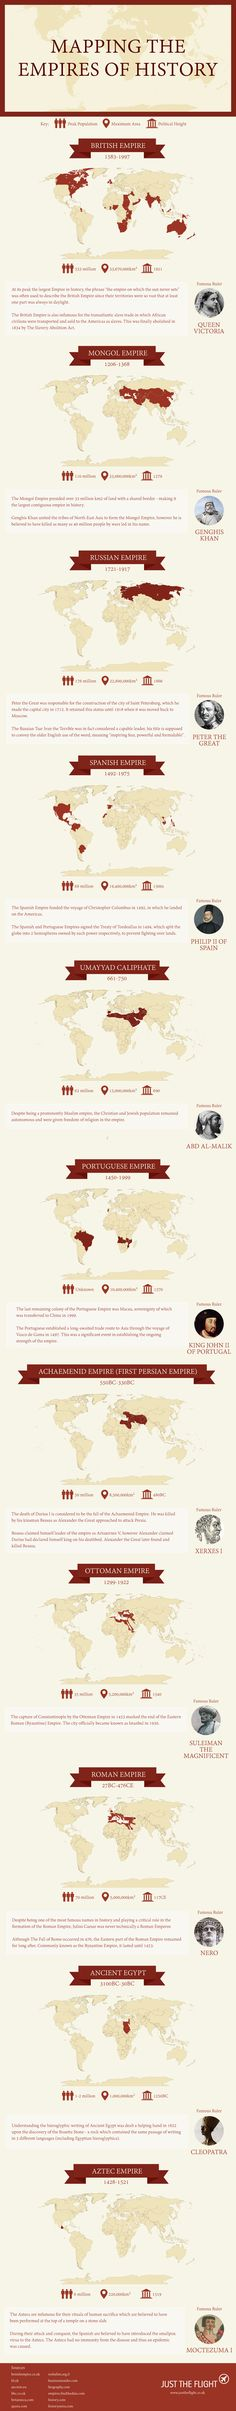 Mapping the Empires of History #Infographic #History